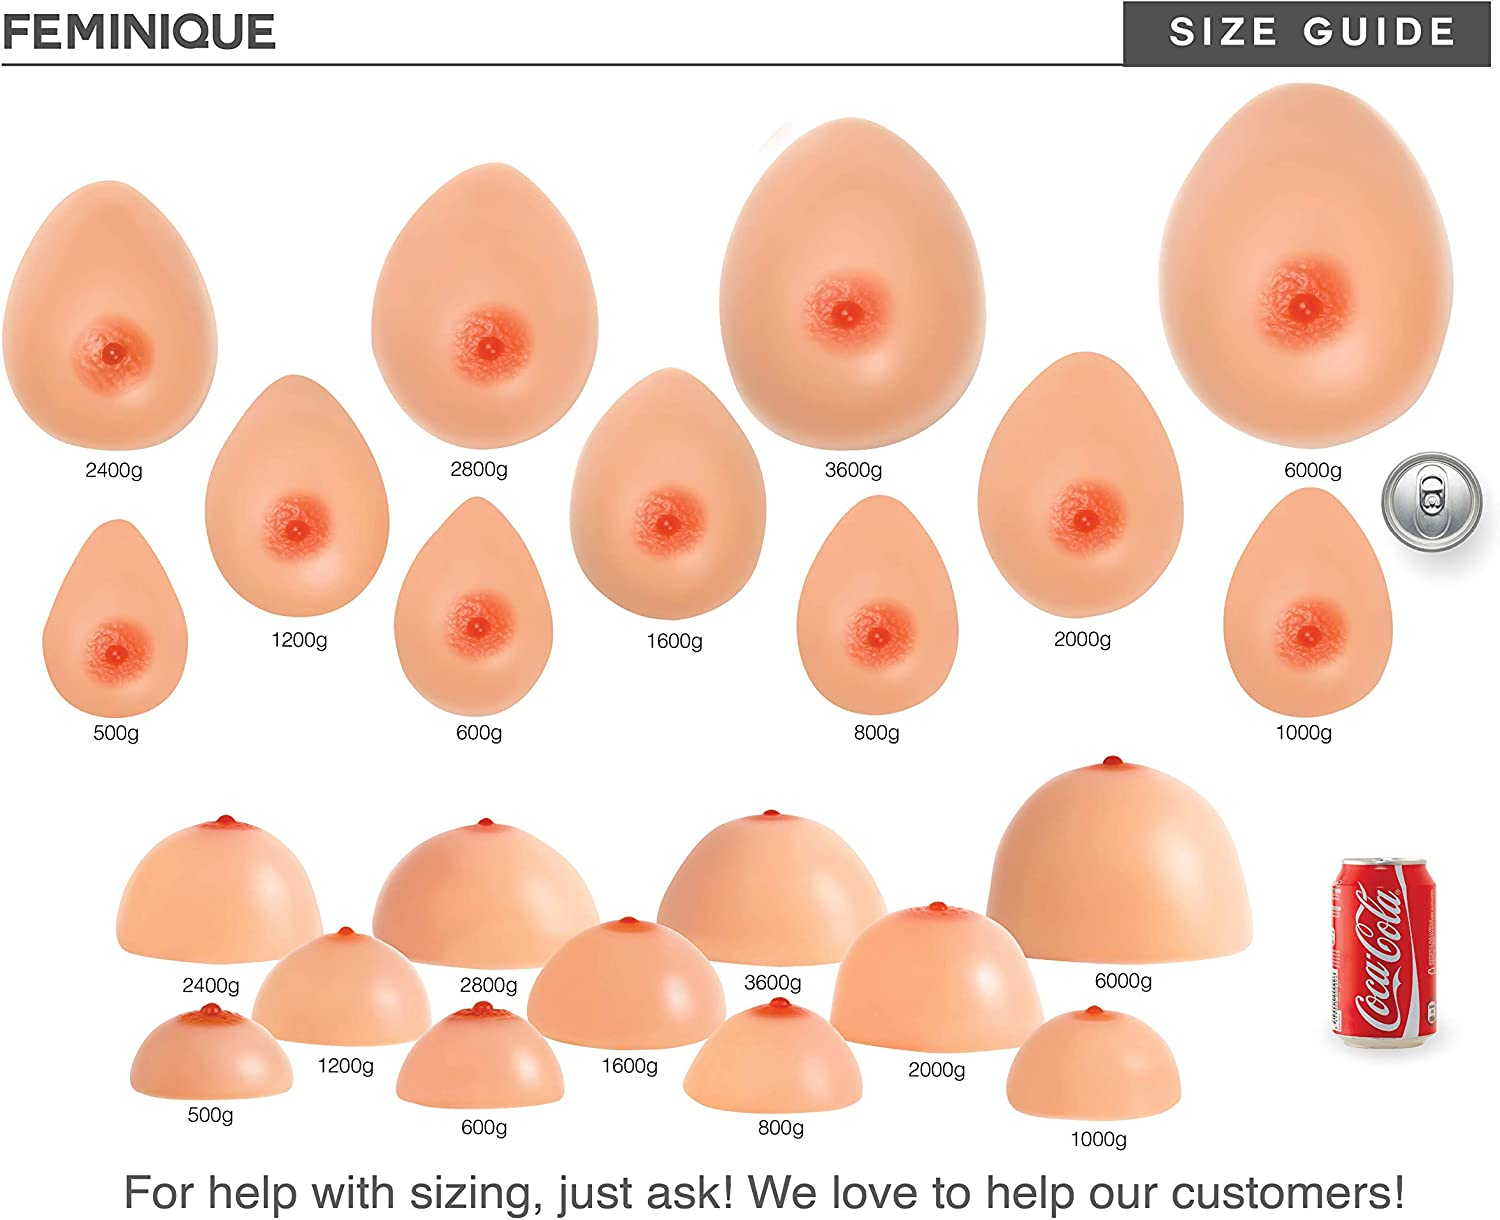 Feminique Silicone Breast Forms Prosthesis Fake Breasts for Crossdressers Mastectomy Transgender and Cosplay Pair